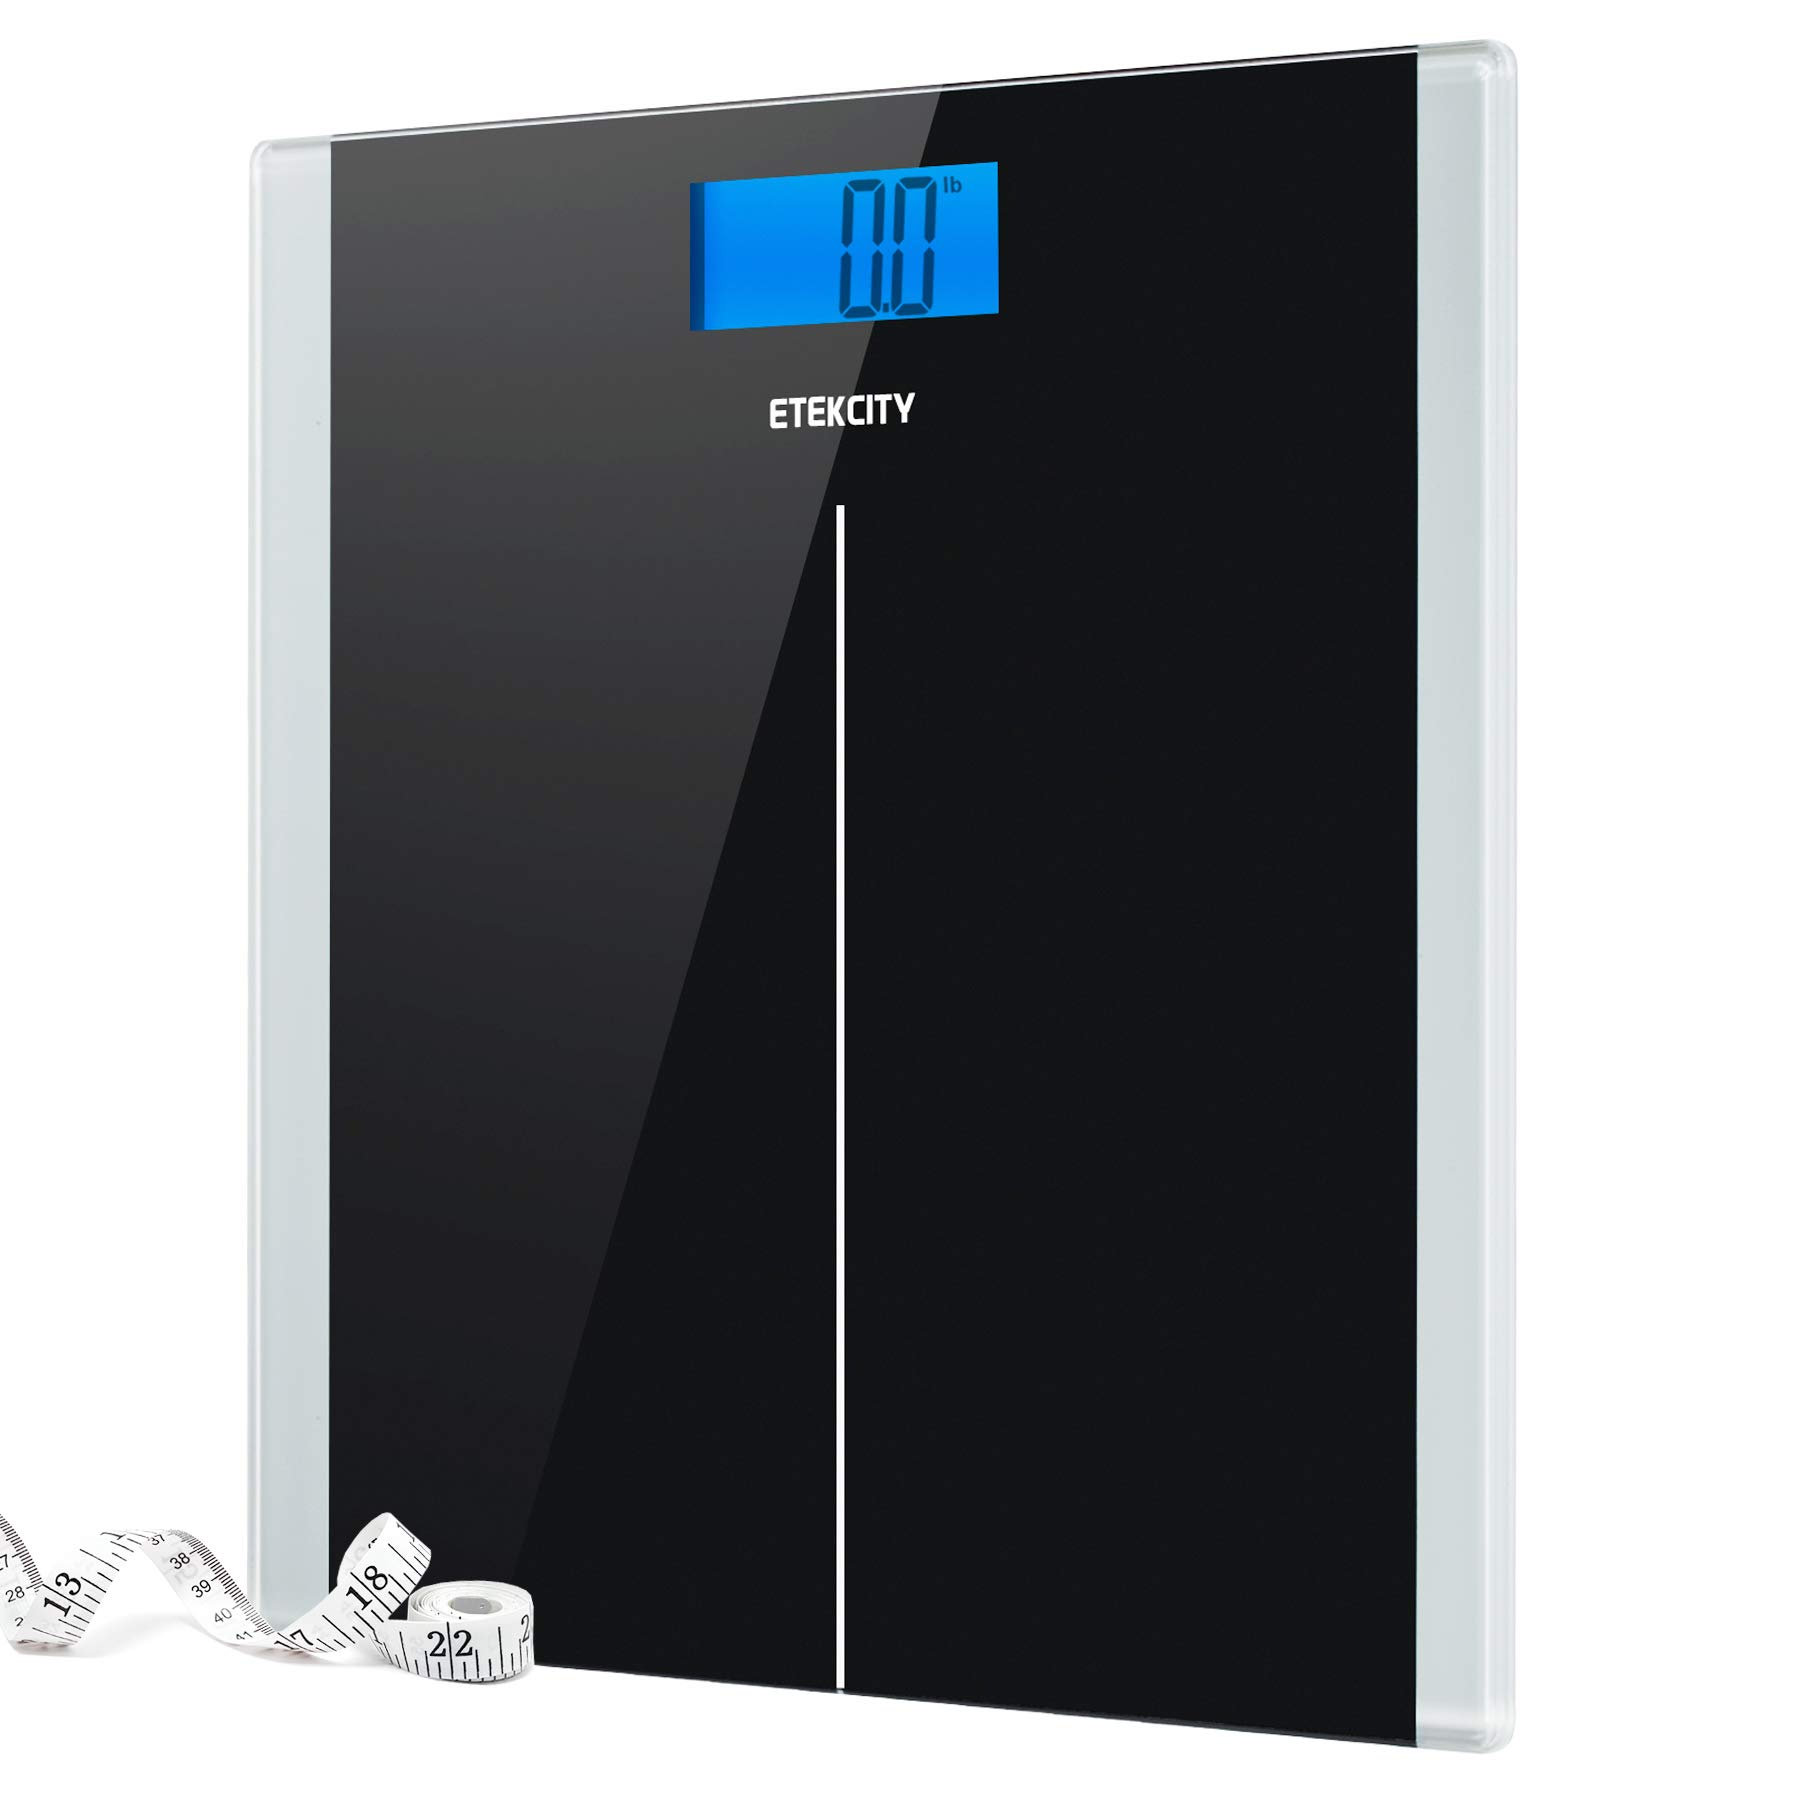 Etekcity Digital Body Weight Bathroom Scale with Step-On Technology, 400 Pounds, Body Tape Measure Included, Elegant Black by Etekcity